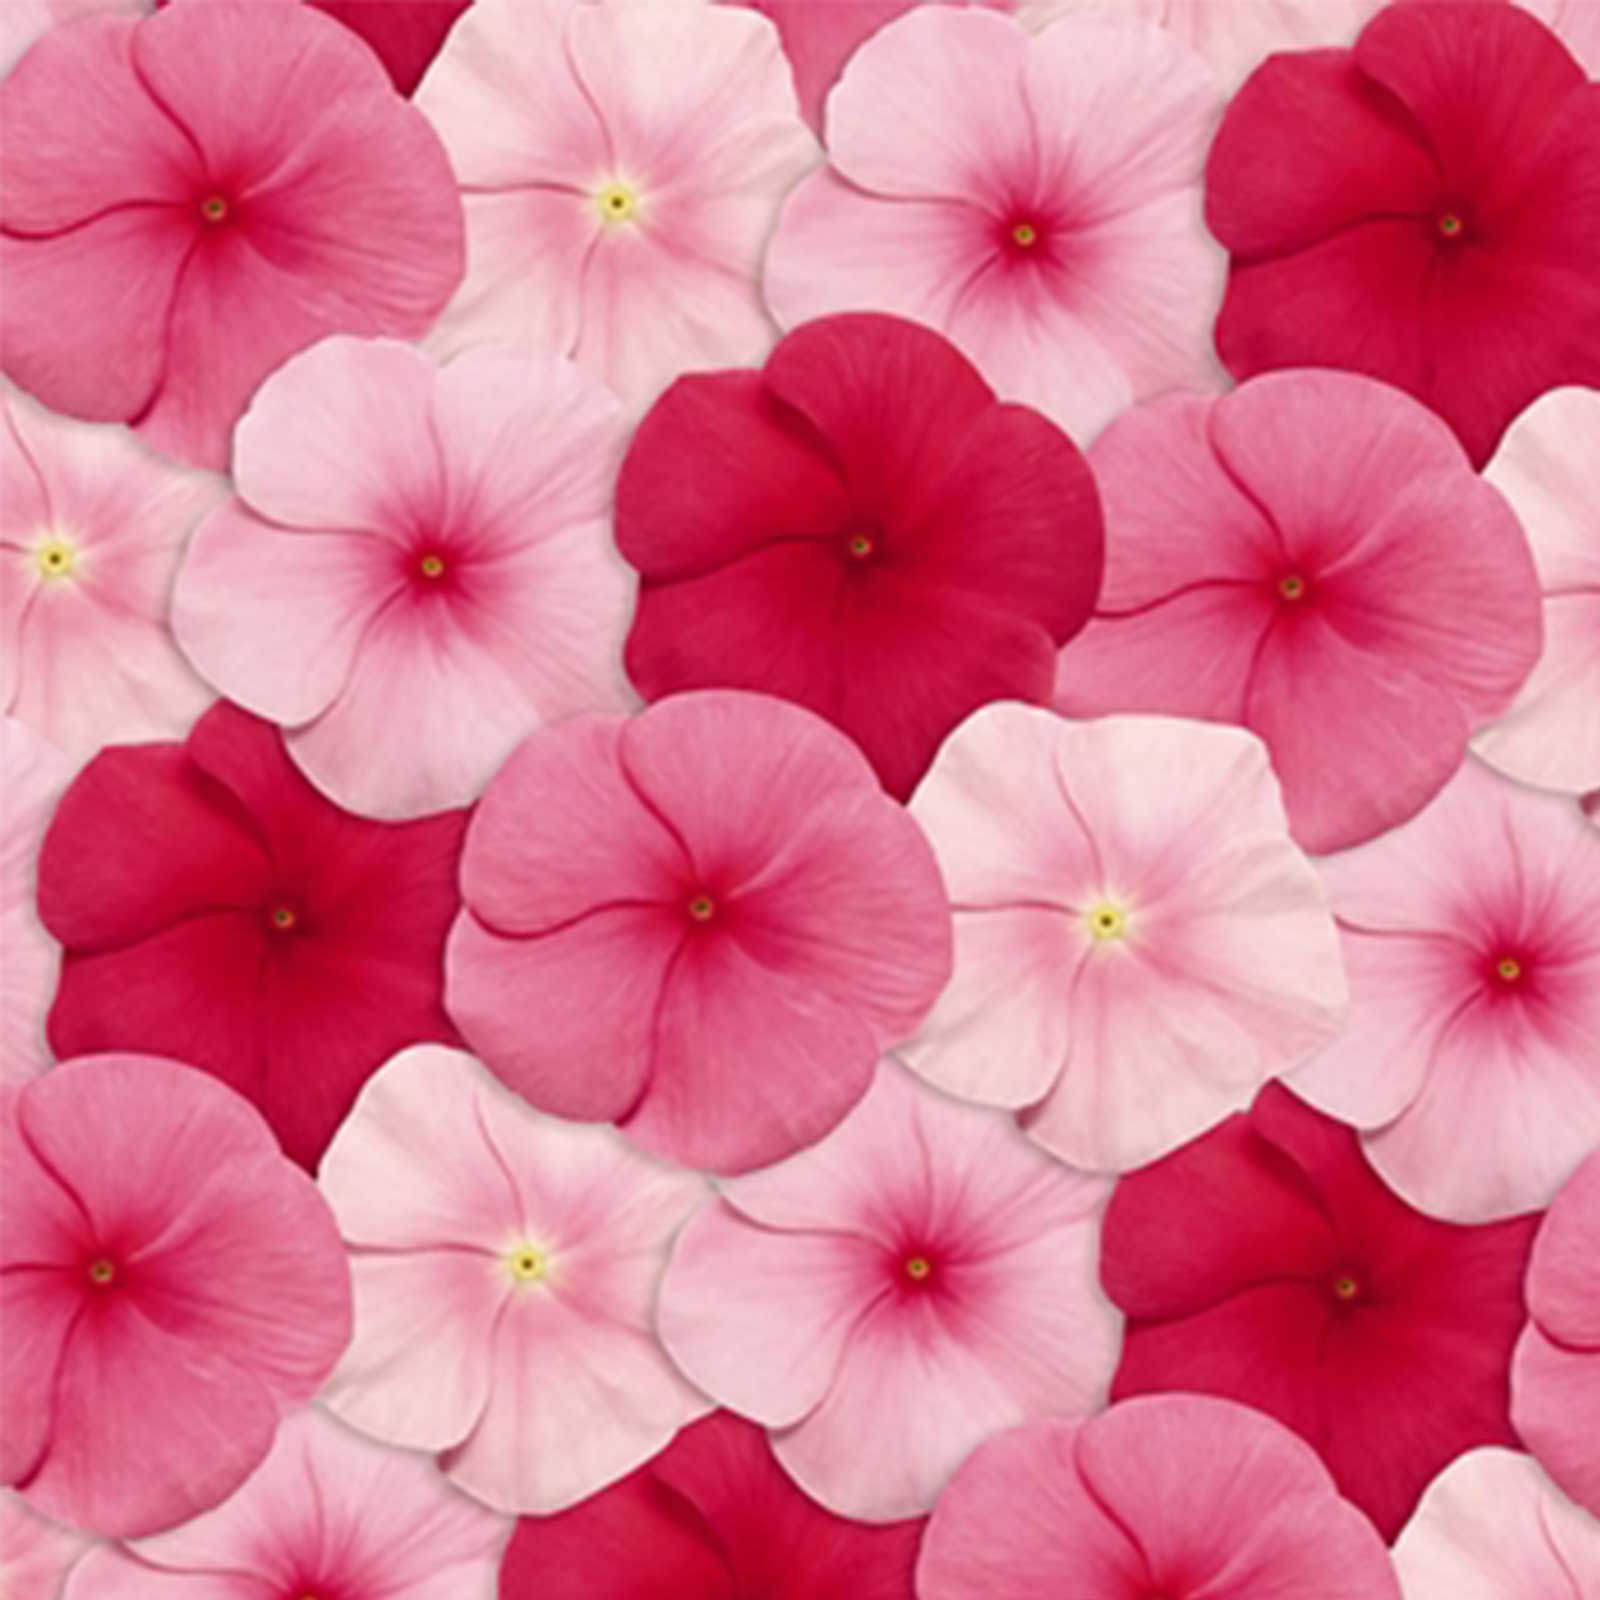 Vinca Flower Garden Seeds Pacifica Xp Lipstick Mix 1000 Seed Annual